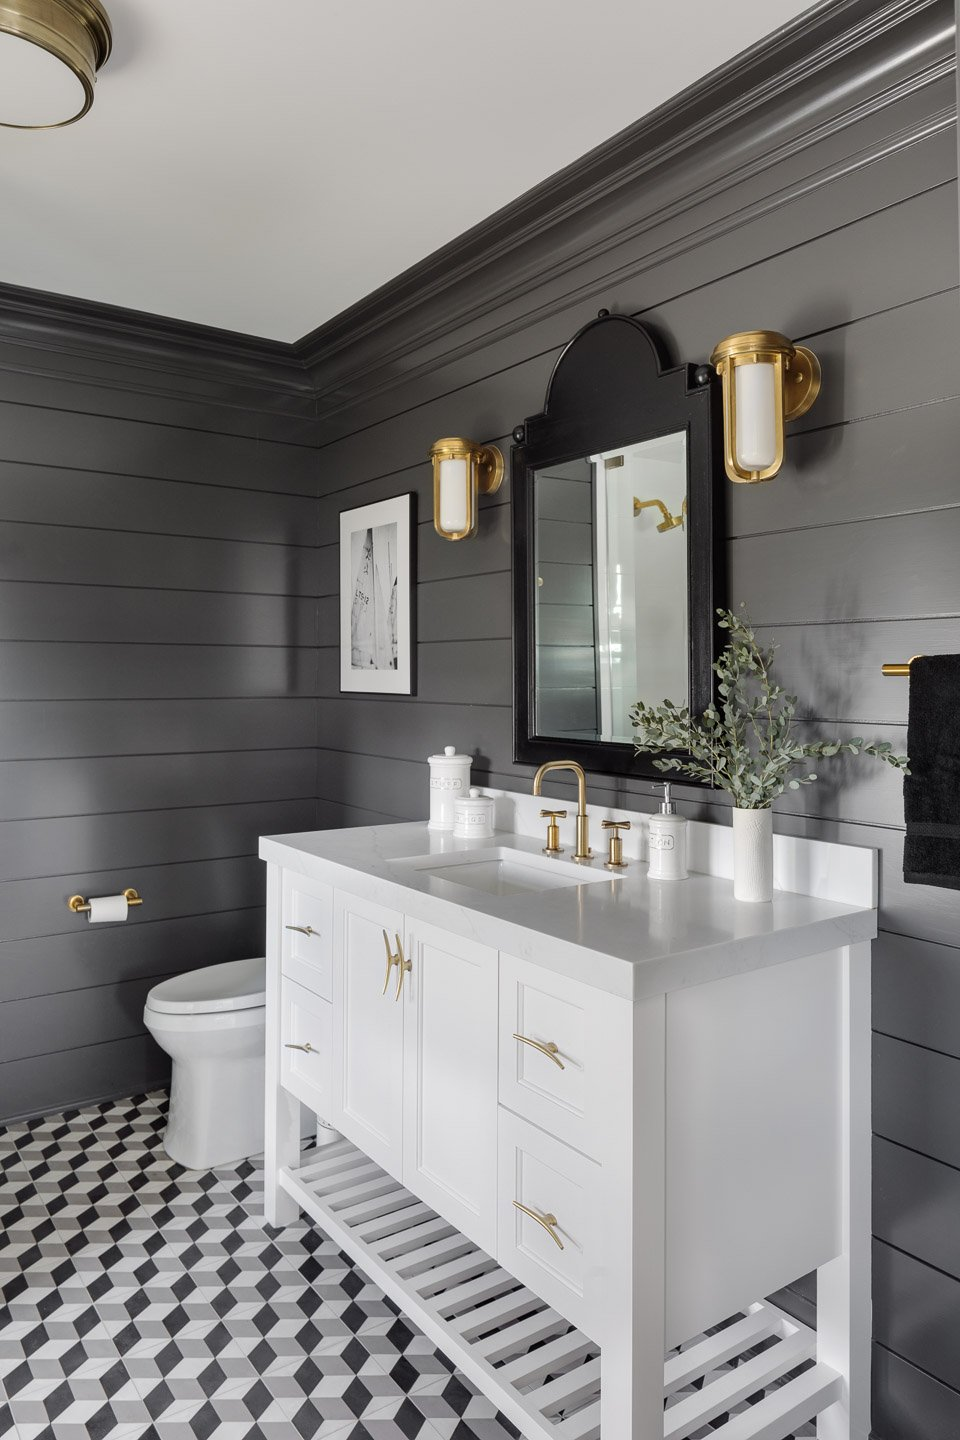 Blakely Interior Design | The Jersey Palm Project | Ensuite bathroom